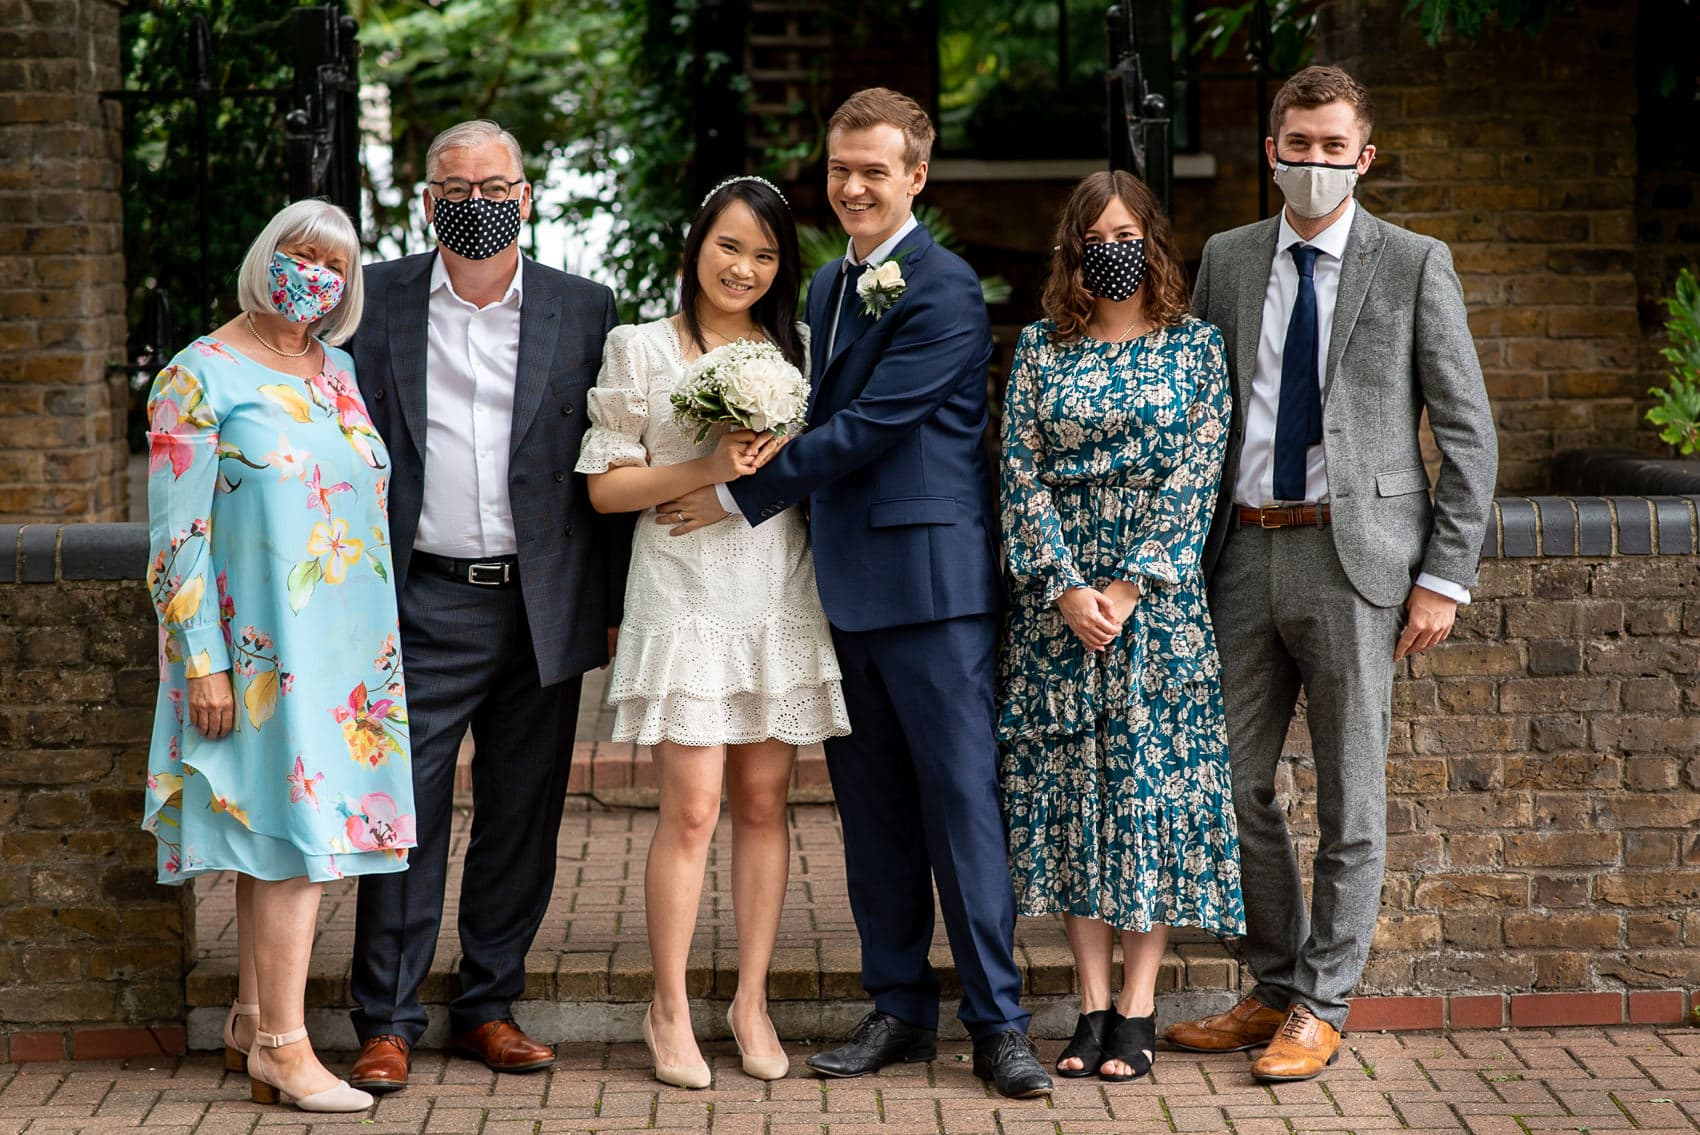 Wedding family formal photo with masks in London during the 2020 Covid19 pandemic